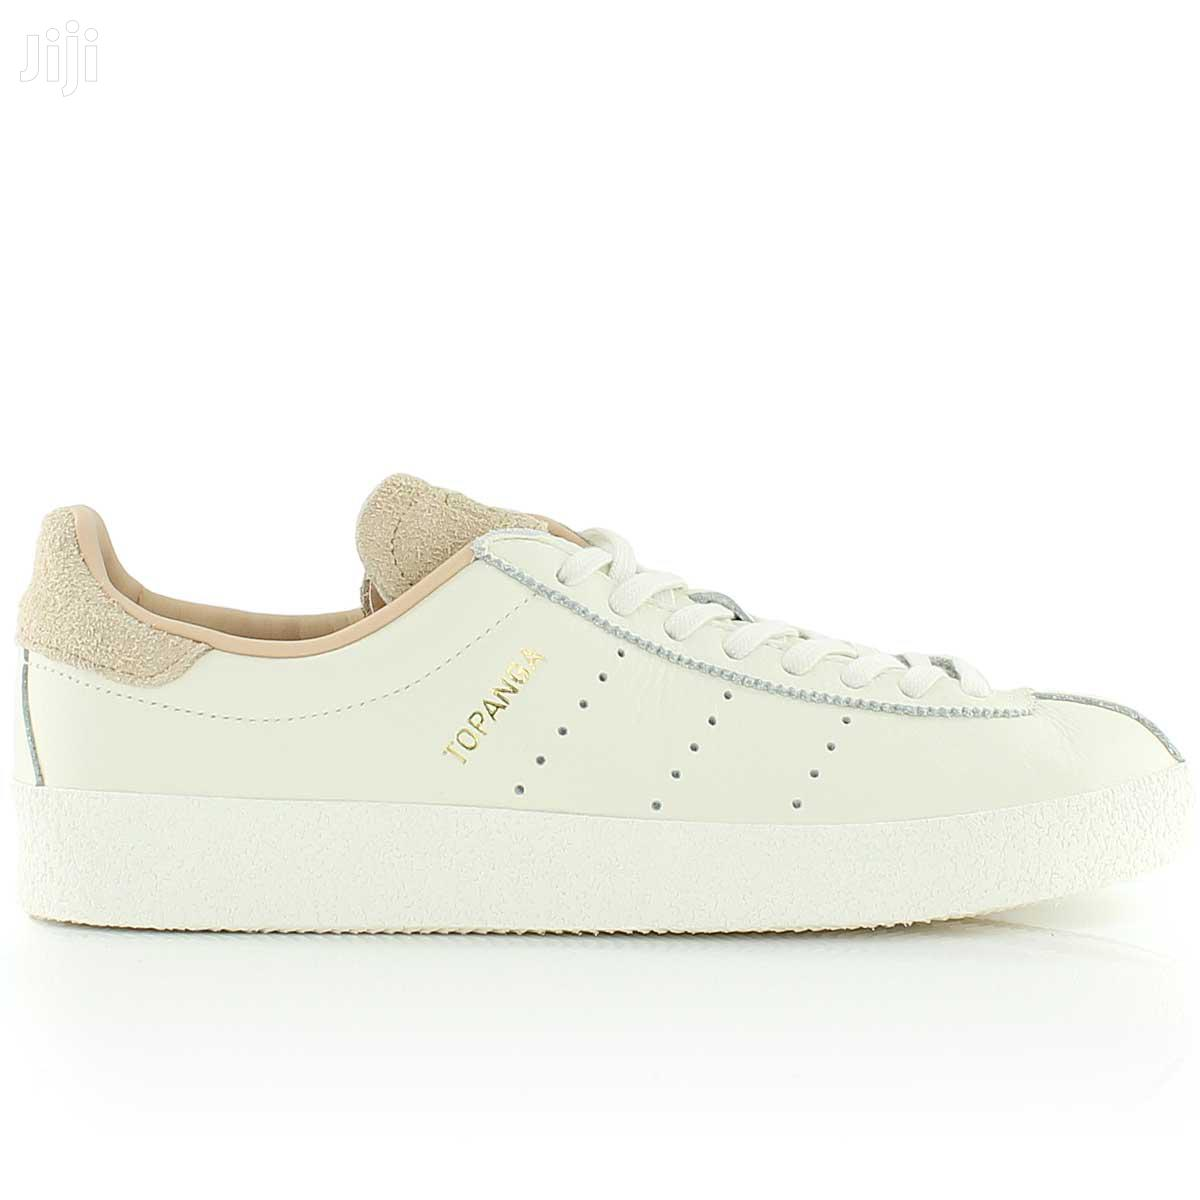 Adidas Topanga For Men